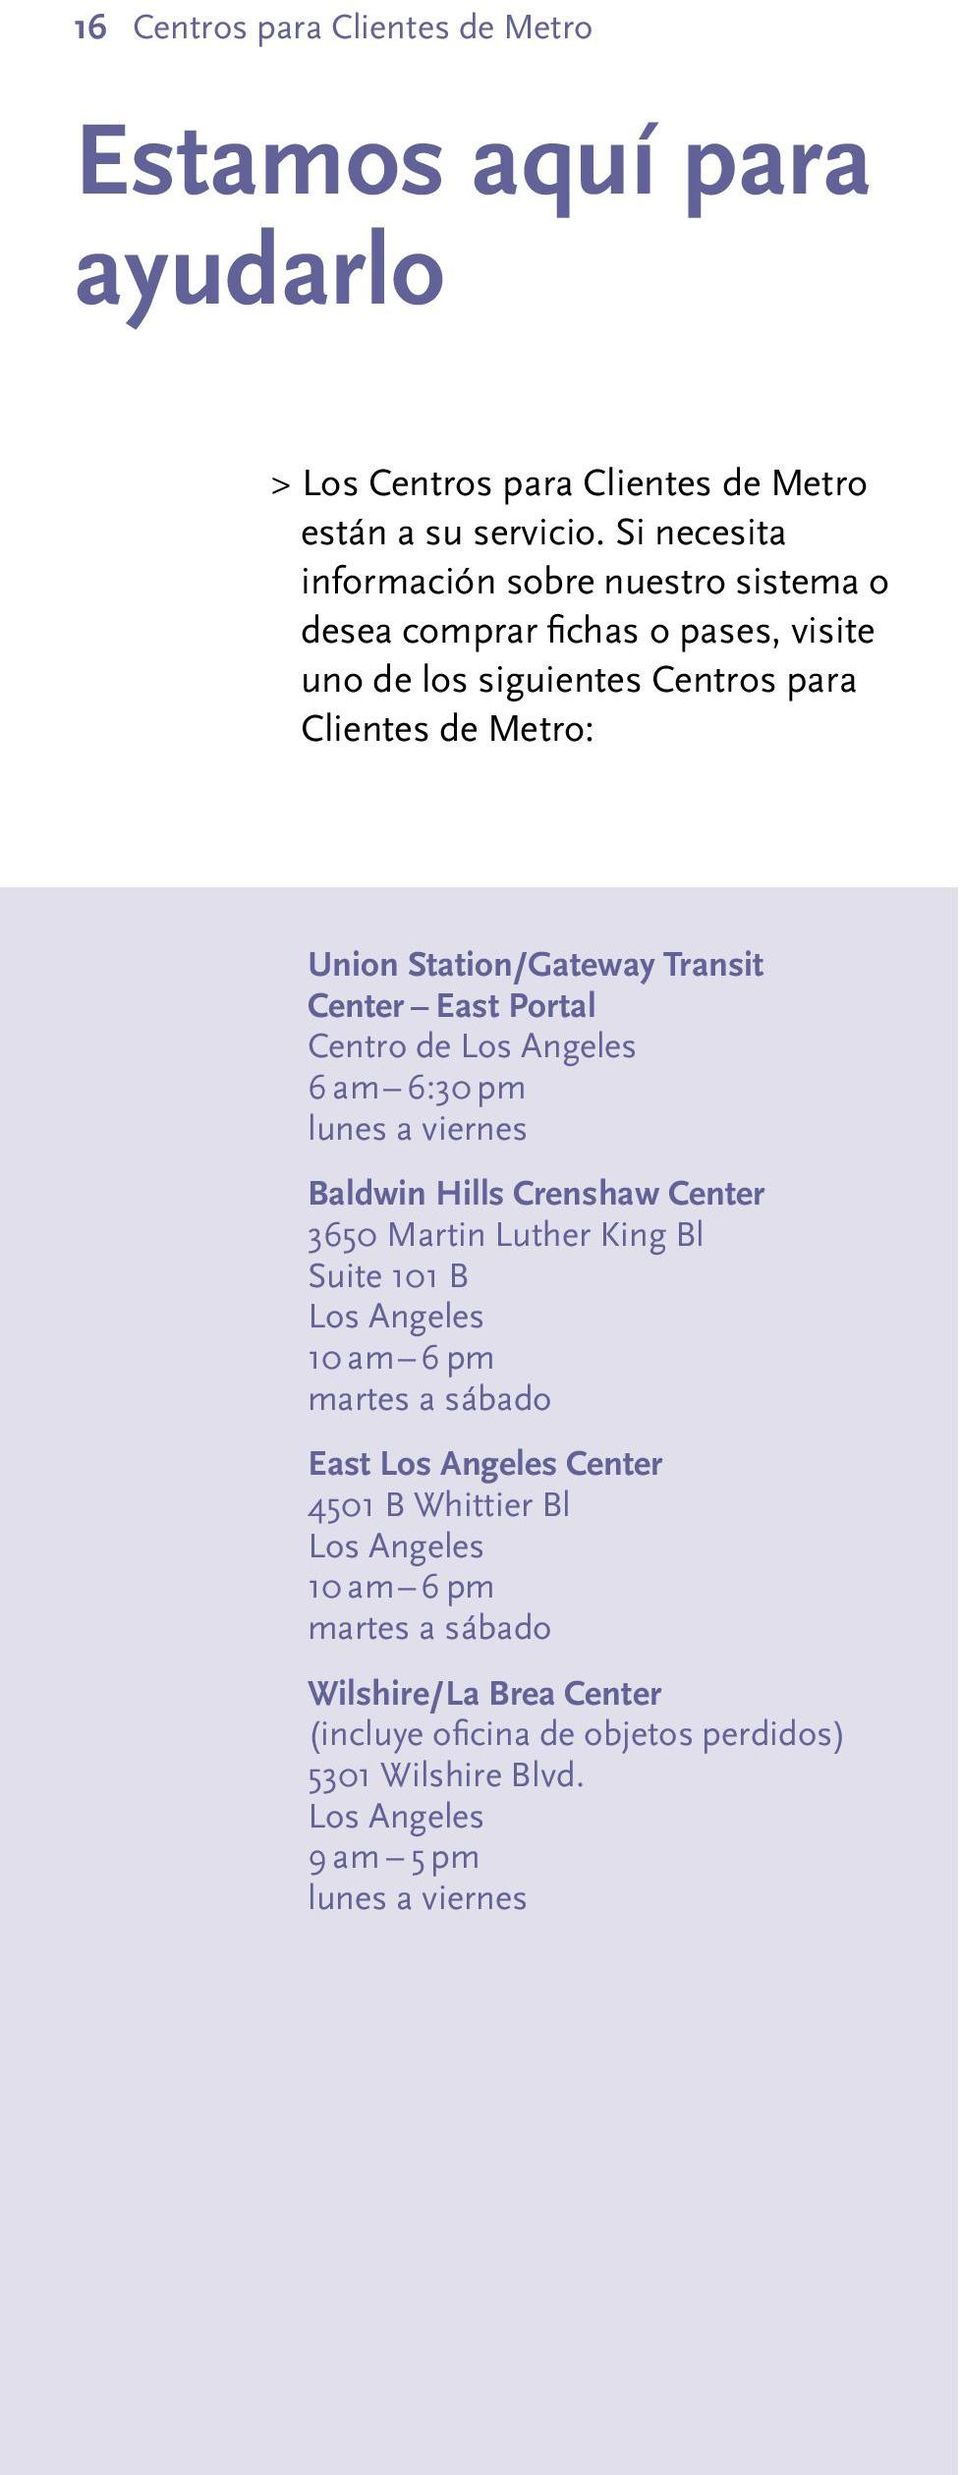 Transit Center East Portal Centro de Los Angeles 6 am 6:30 pm lunes a viernes Baldwin Hills Crenshaw Center 3650 Martin Luther King Bl Suite 101 B Los Angeles 10 am 6